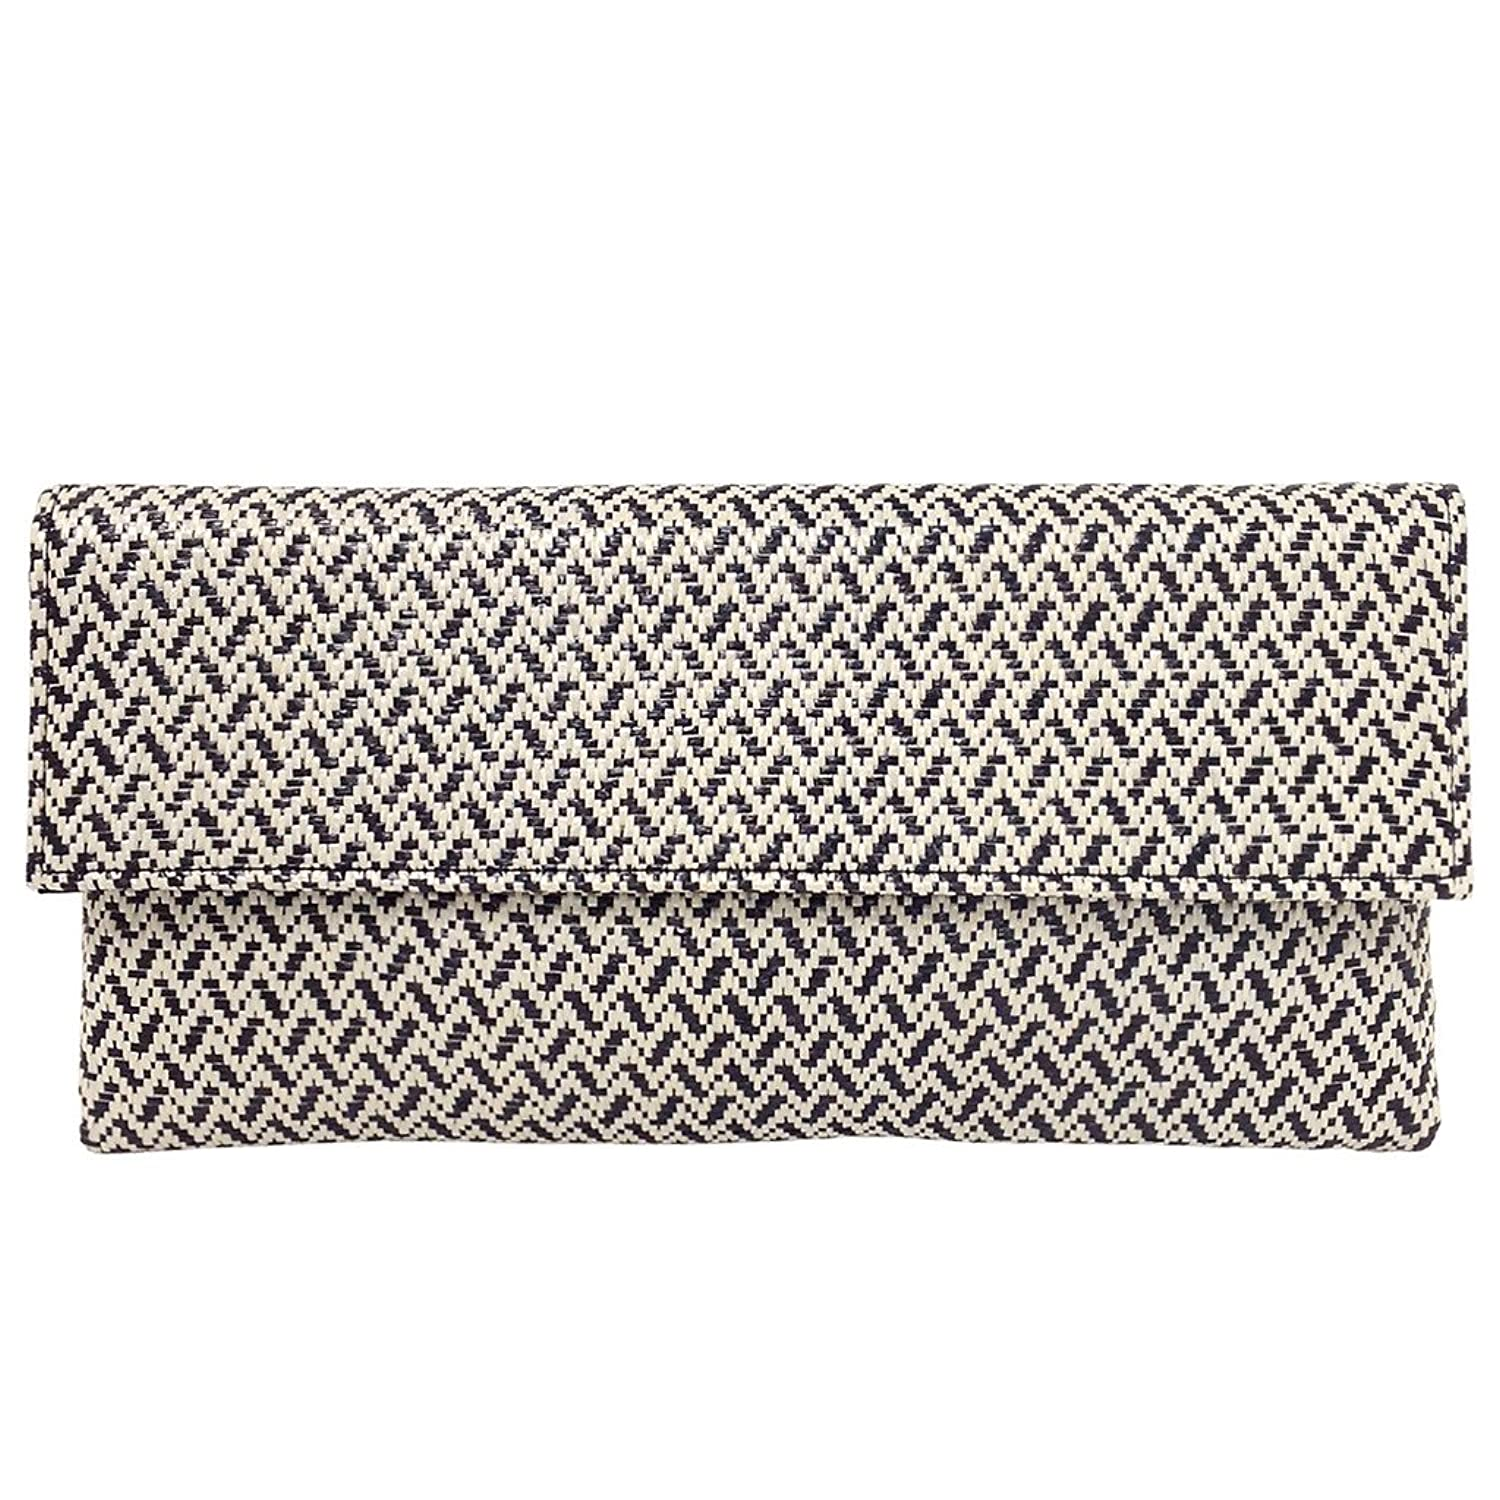 Raffia Chevron Clutch by Jnb